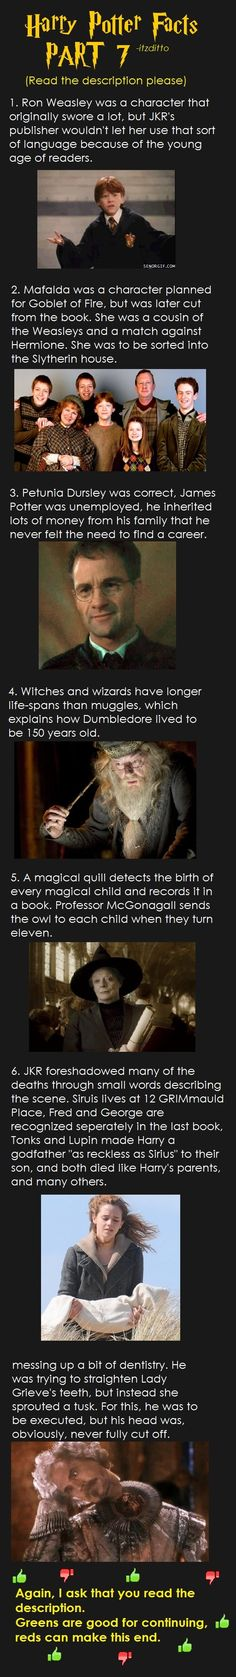 Harry Potter Facts Part 7